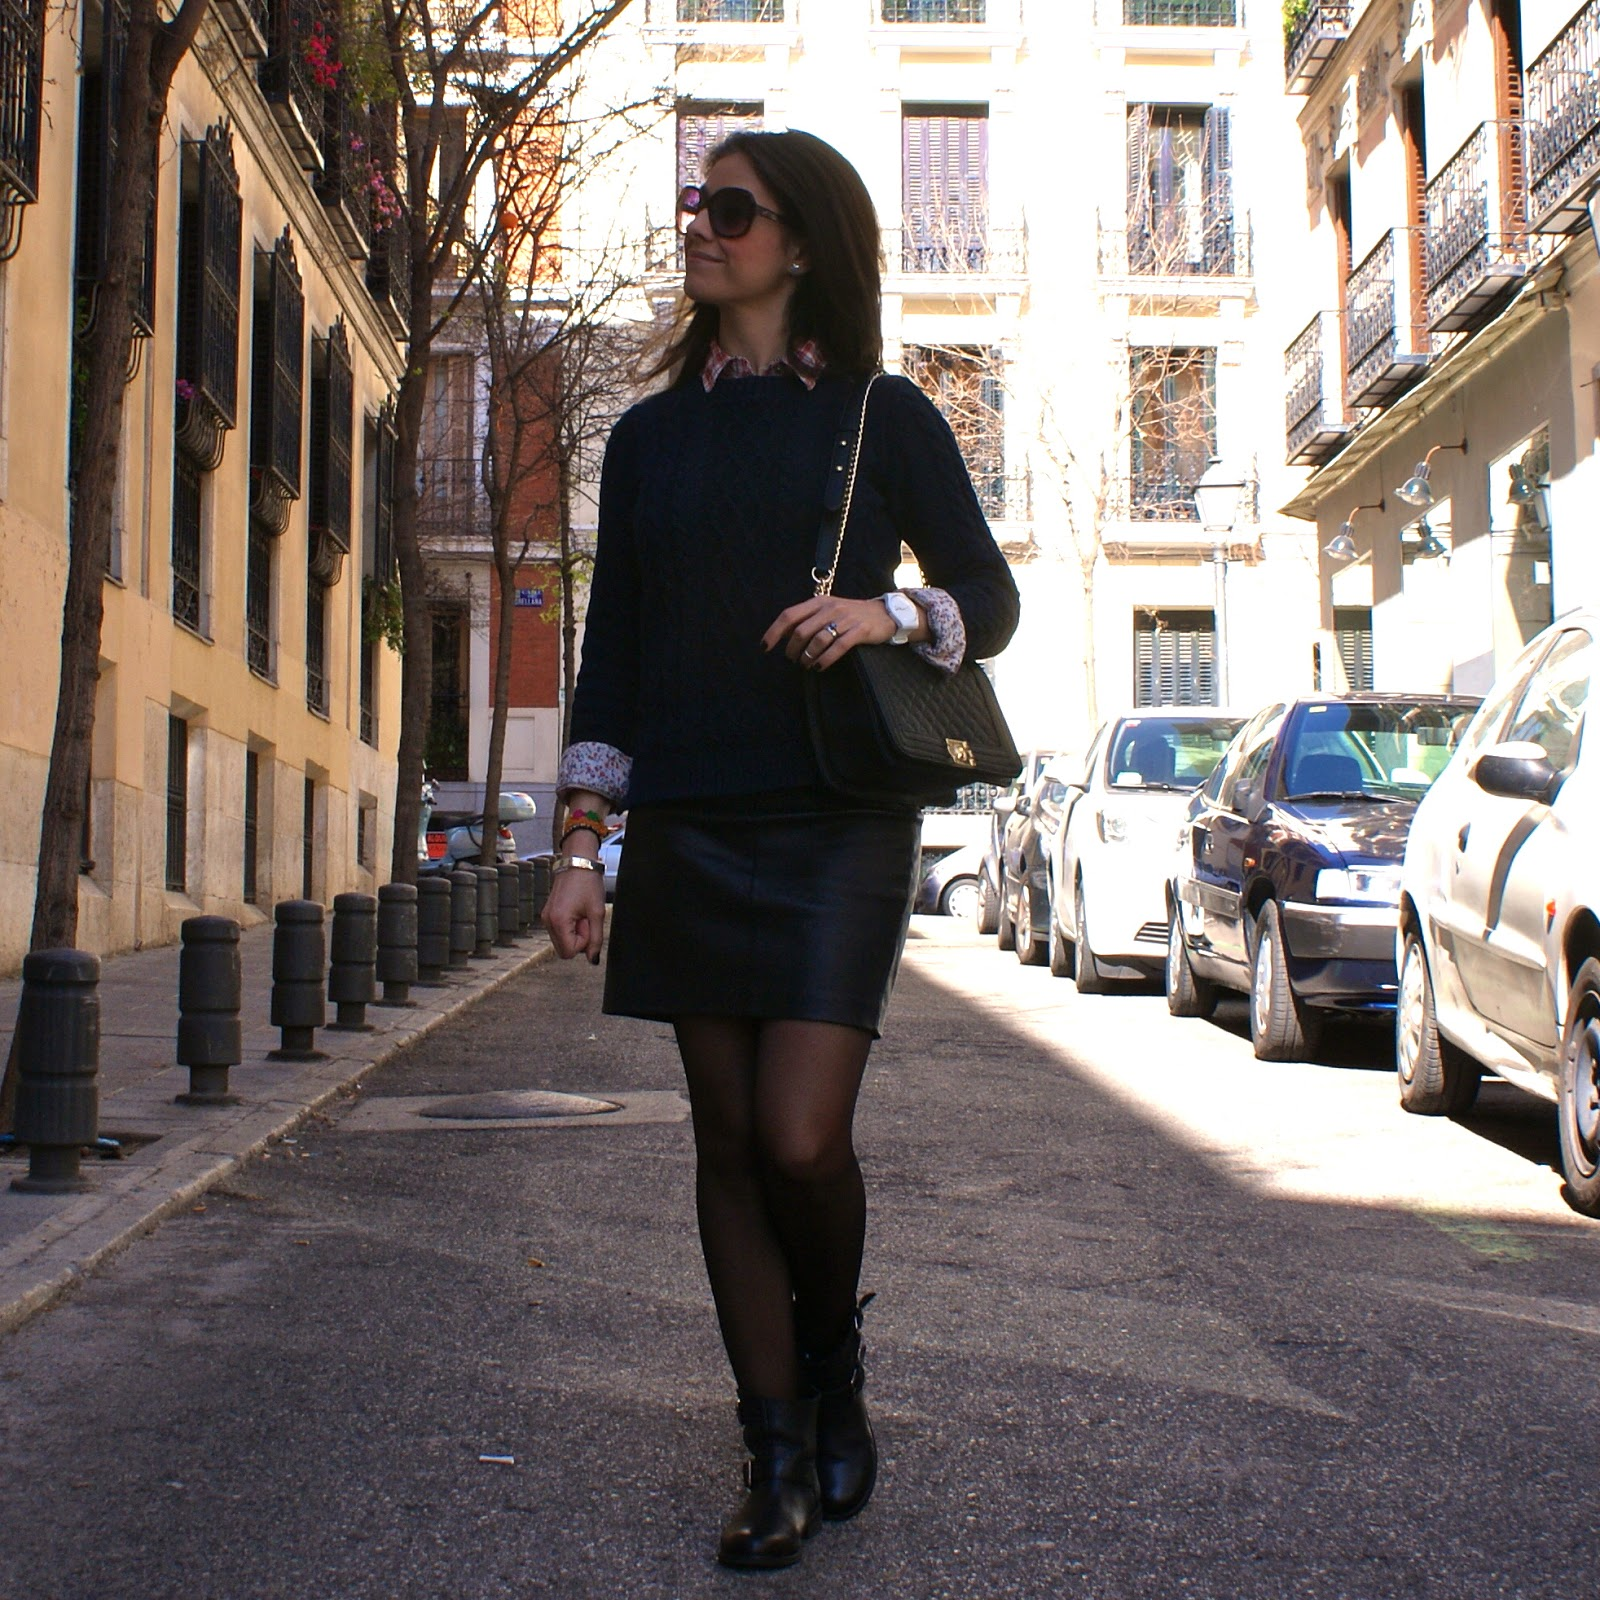 LaCaprichossa-fashion-blogger-leather-skirt-biker-boots-boy-bag-swatch-cruciani-bracelets